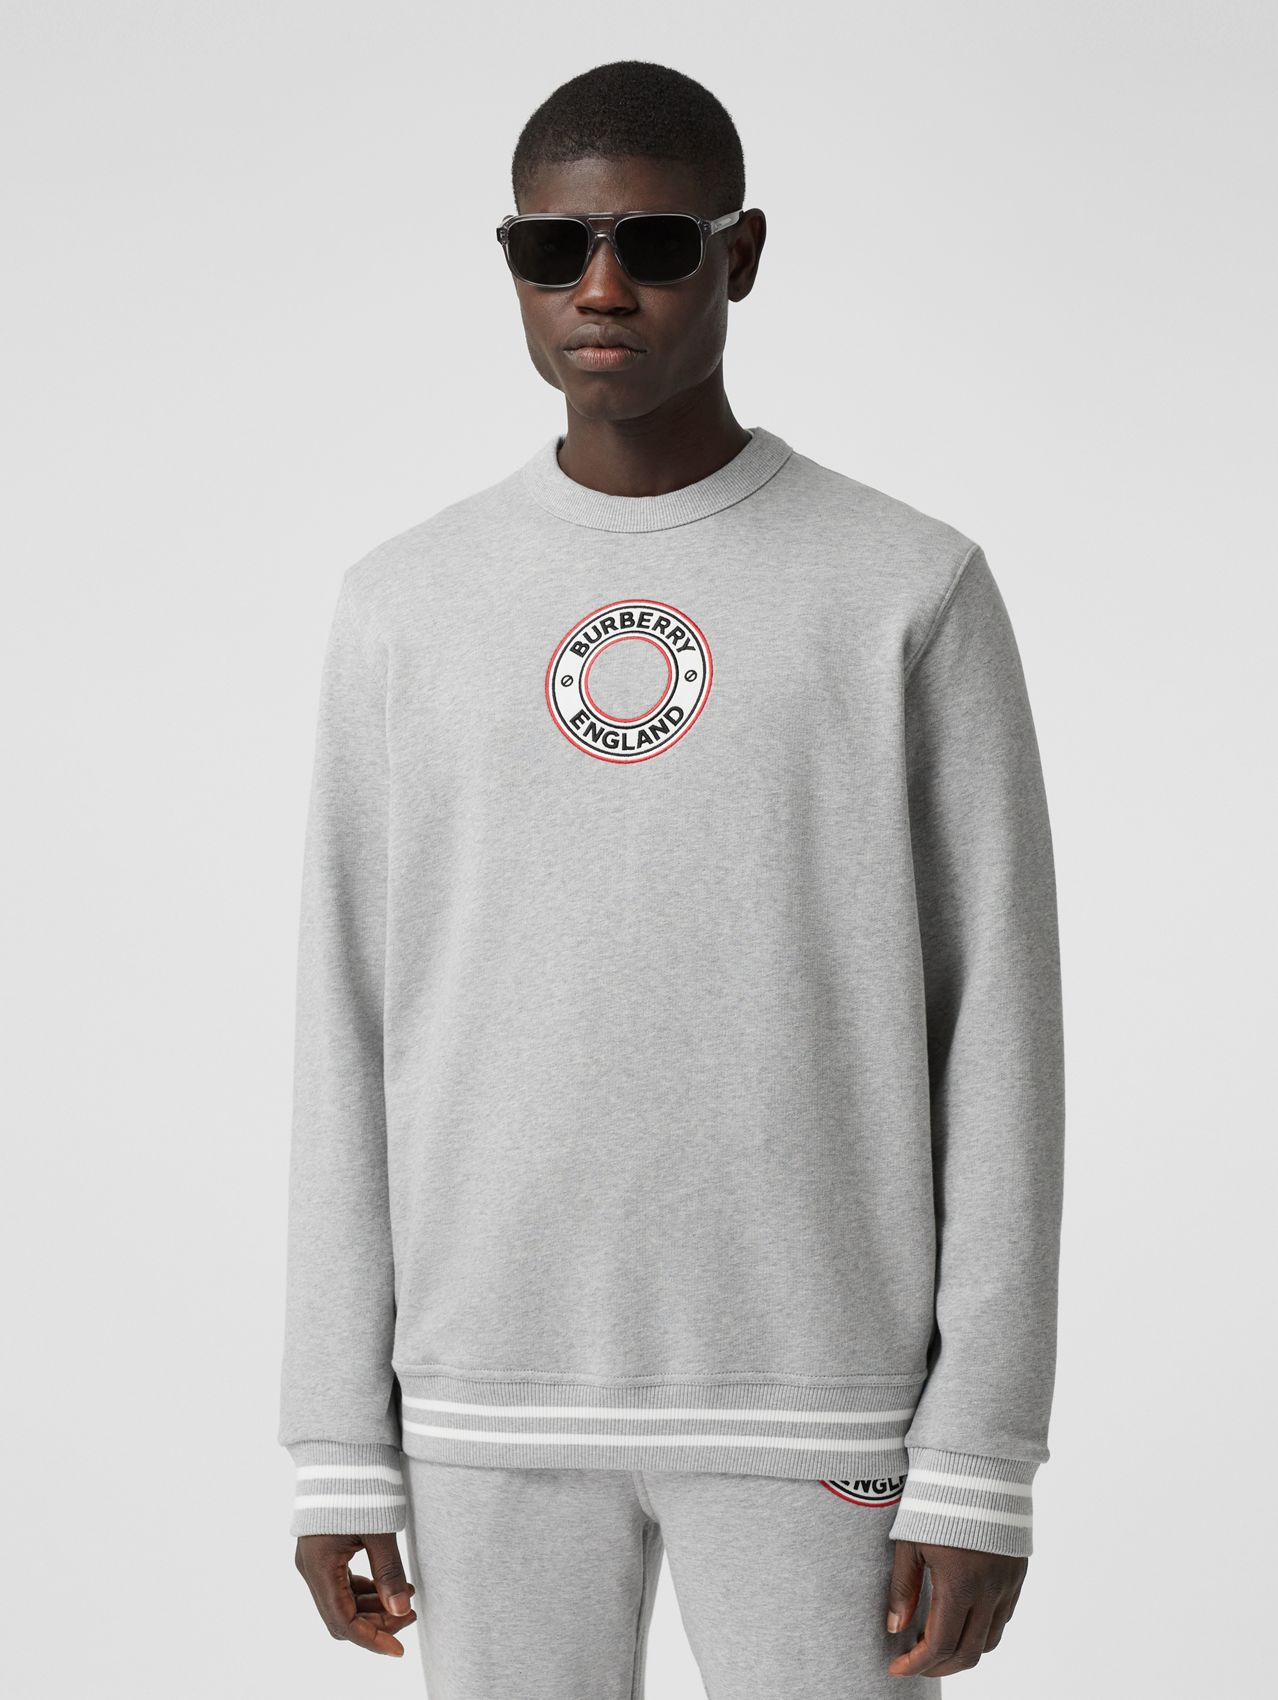 Logo Graphic Appliqué Cotton Sweatshirt in Pale Grey Melange